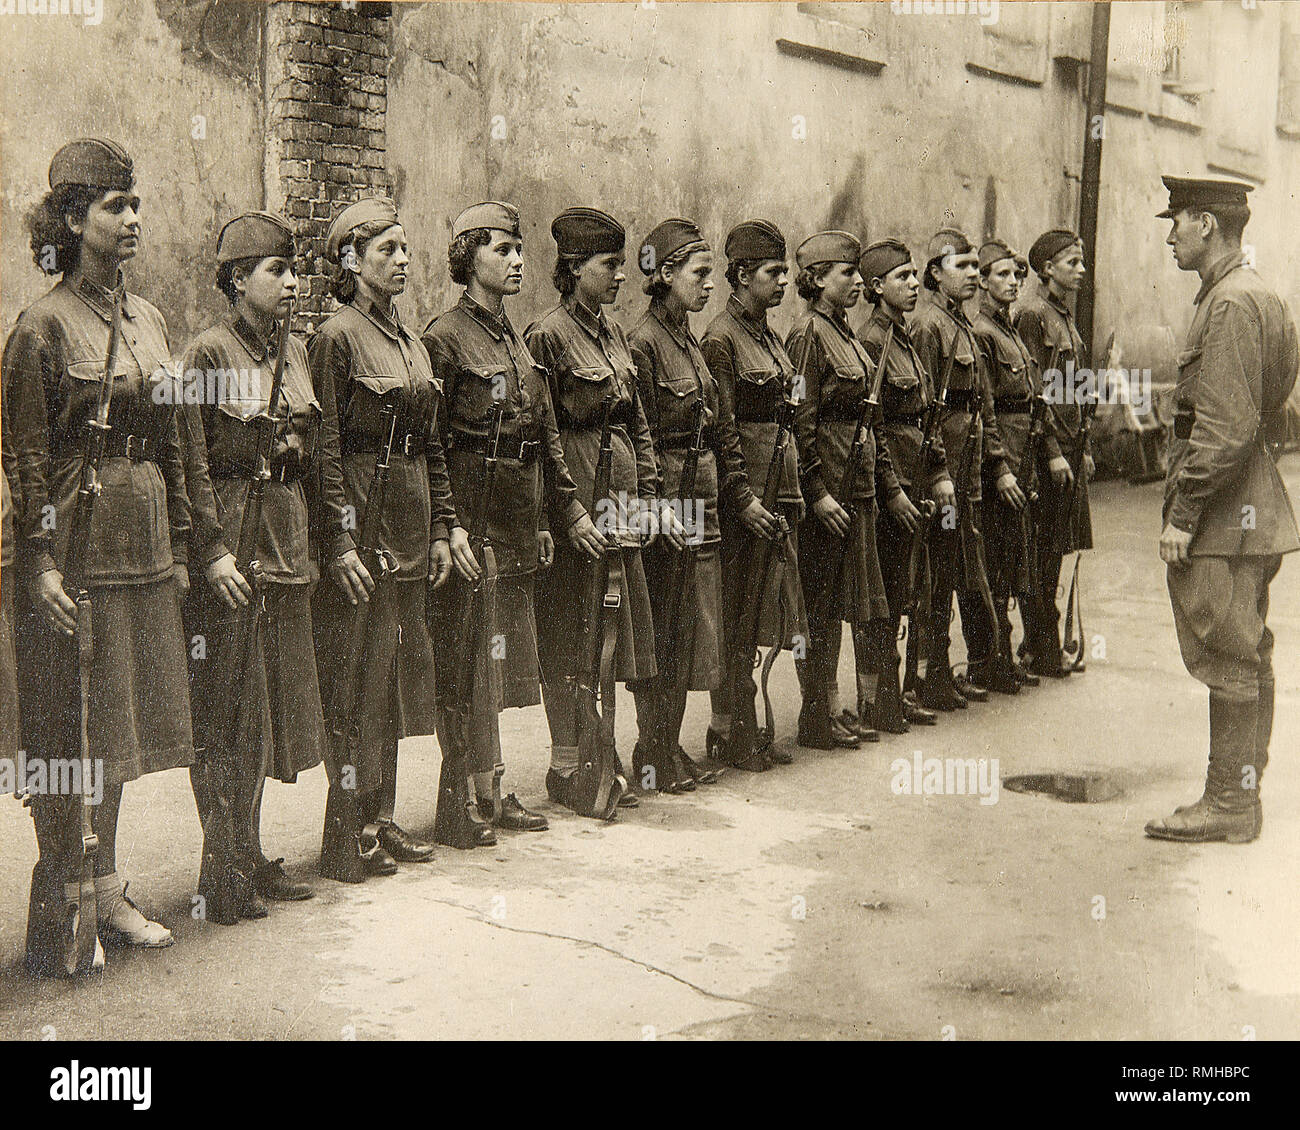 Great Patriotic War. Women - Warriors of the Red Army. Photograph - Stock Image